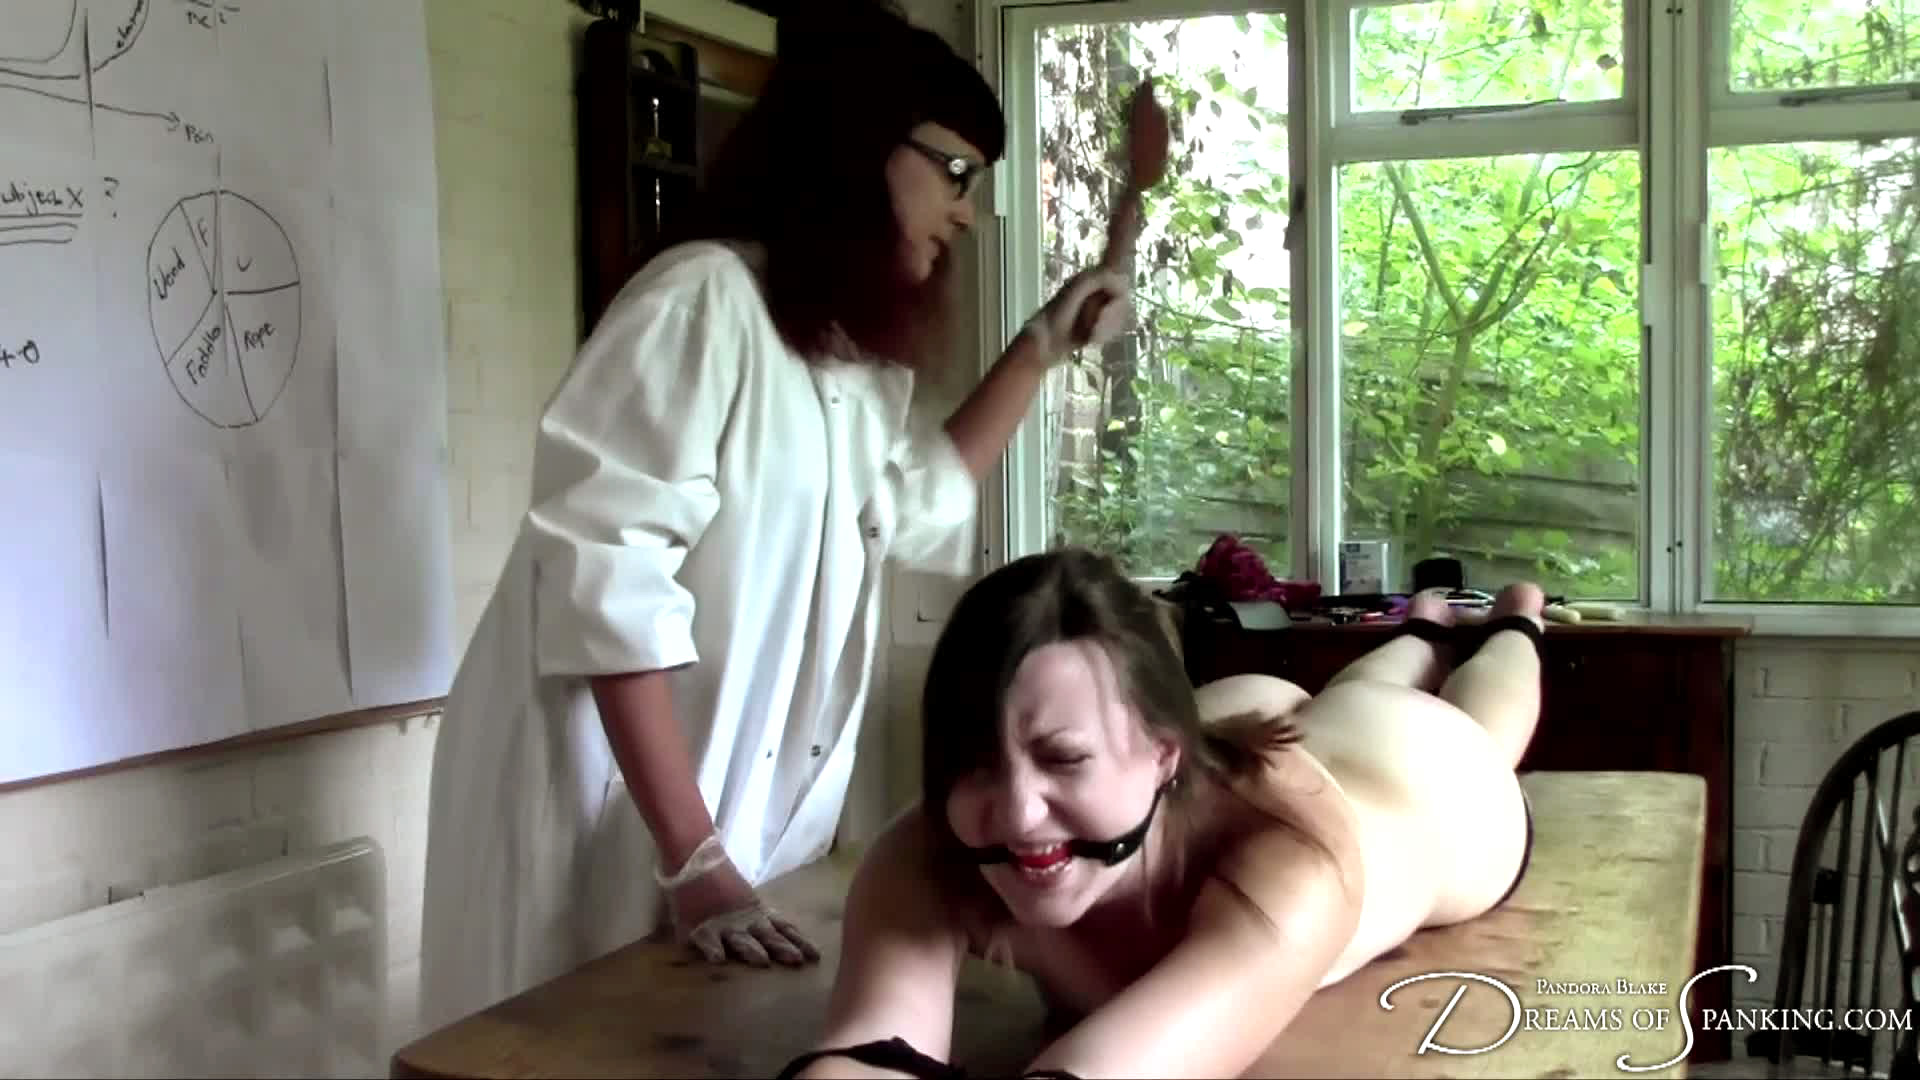 Doctor of Pain at Dreams of Spanking